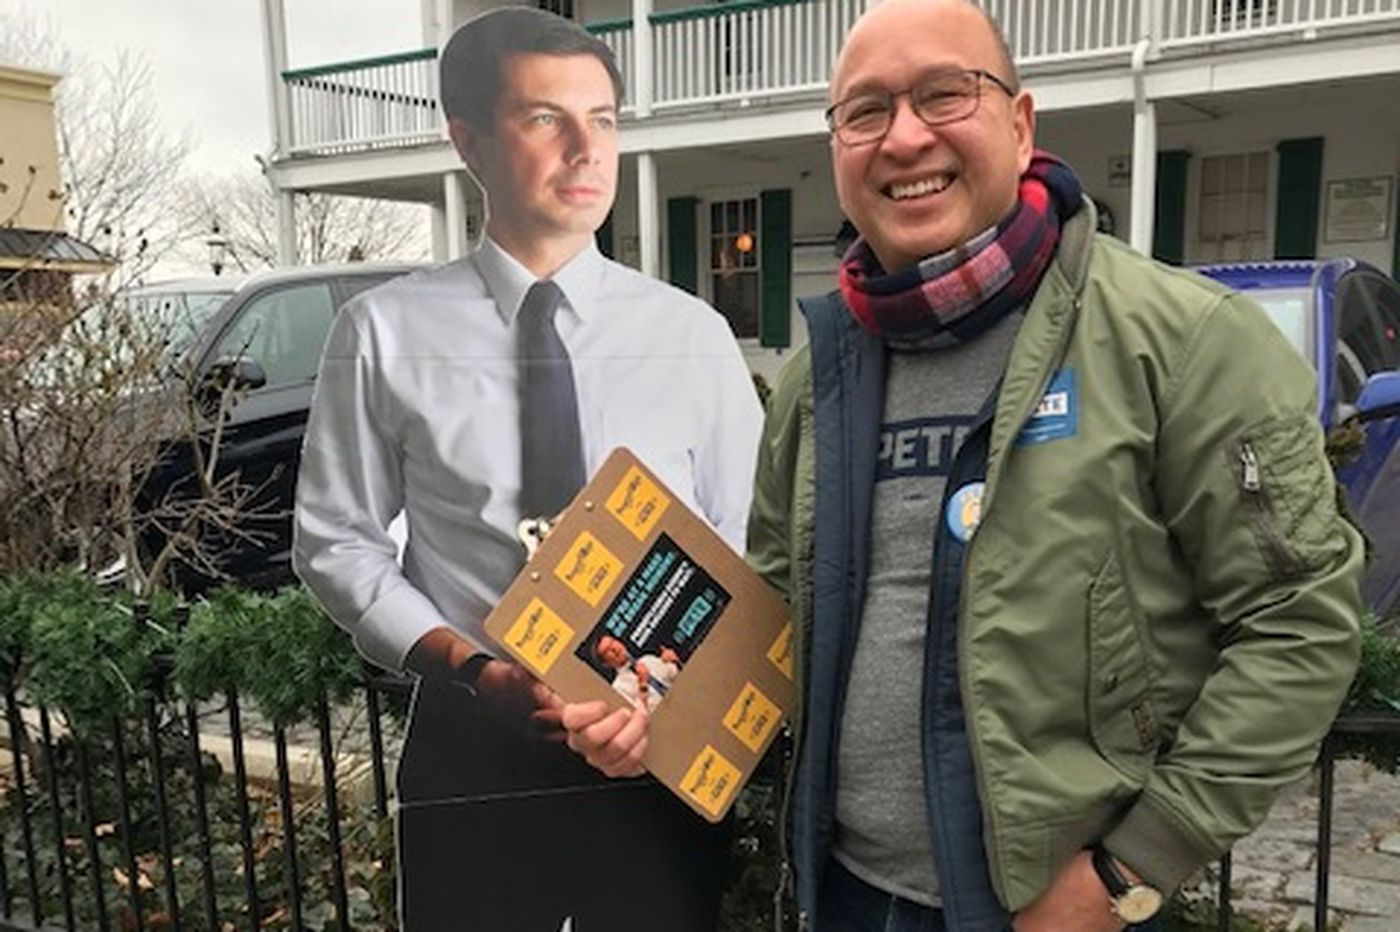 I was a delegate for Pete Buttigieg — until he dropped out. Now what? | Opinion